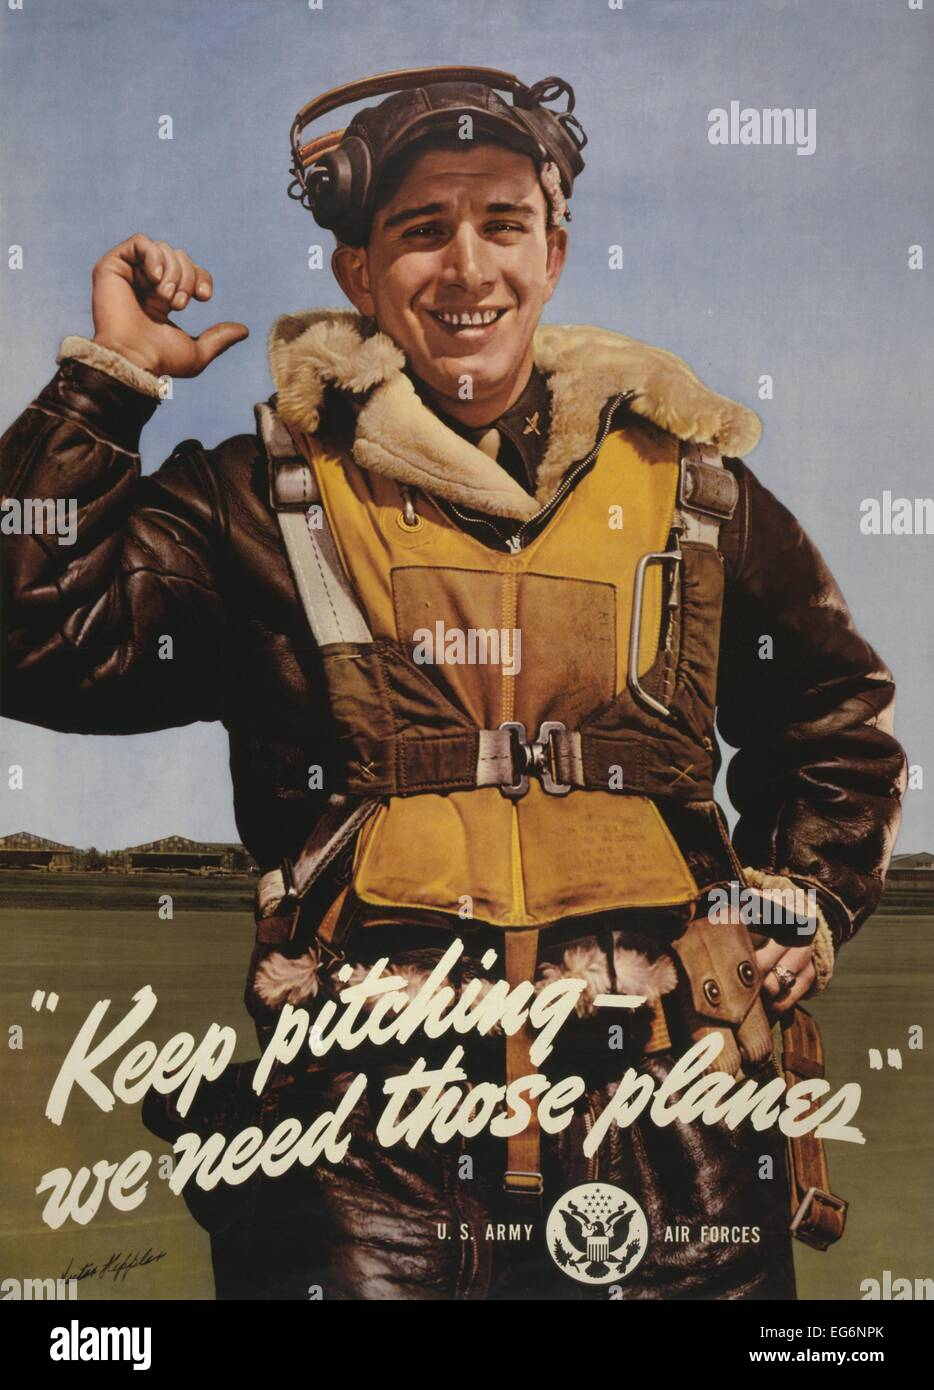 'Keep pitching - we need those planes.' World War 2 Poster shows American aviator standing on airfield. - Stock Image